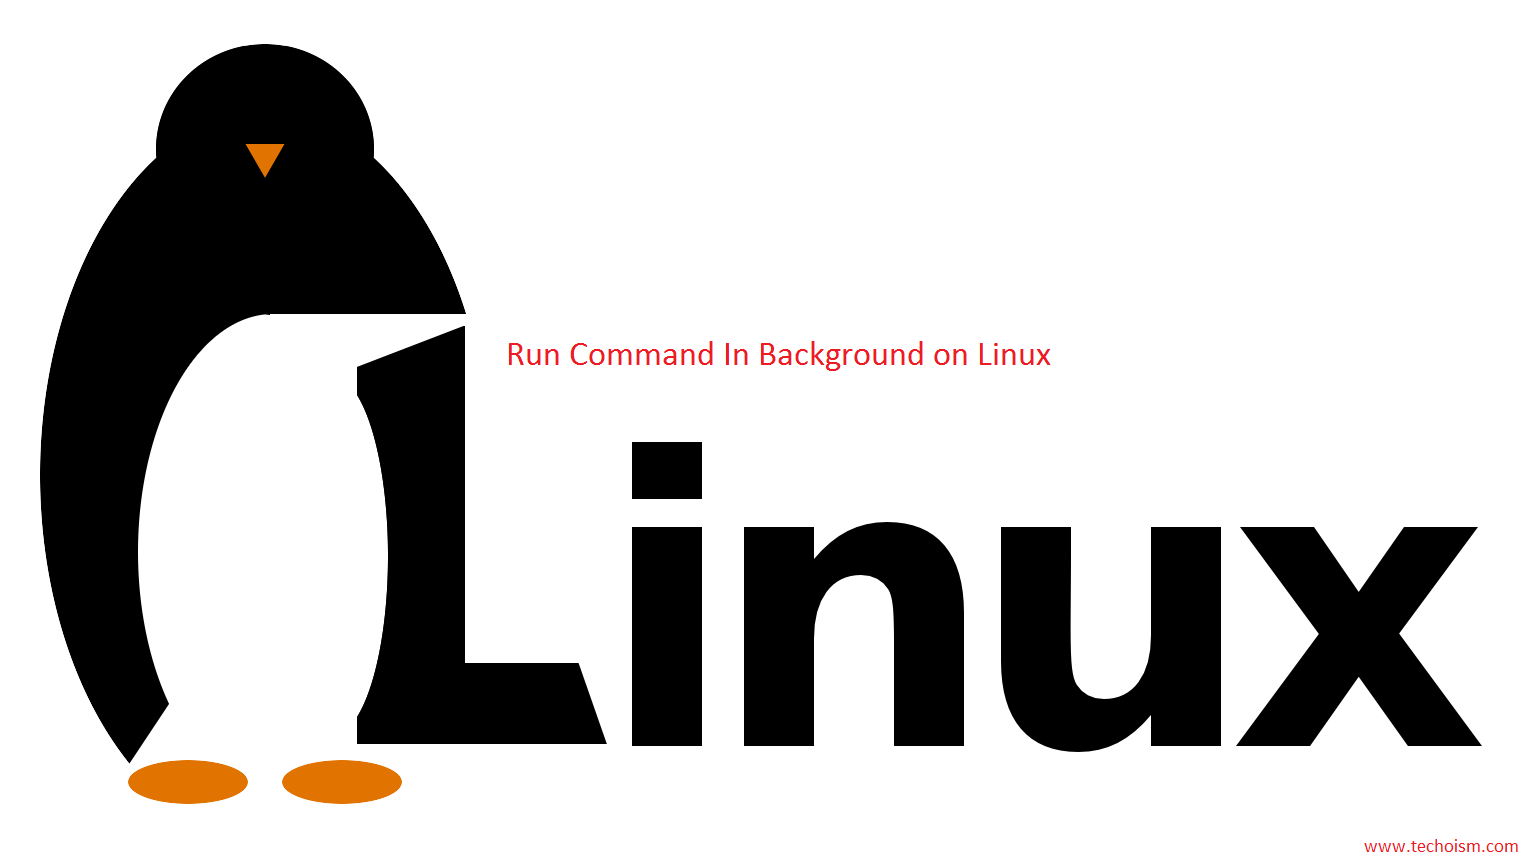 Run Command In Background on Linux